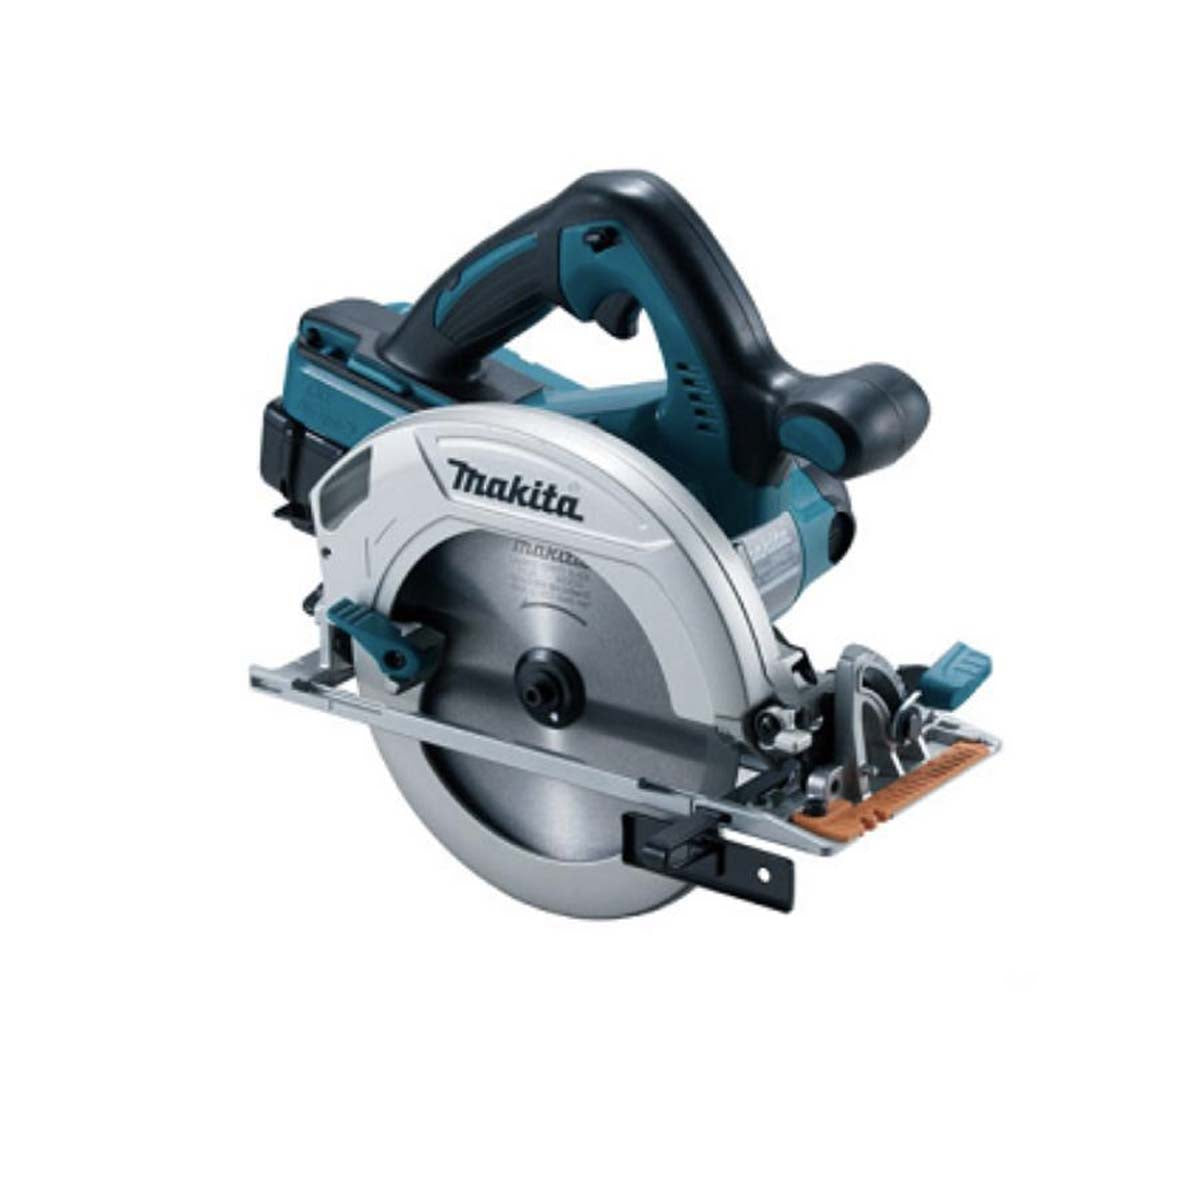 Makita Cordless Circular Saw (SET 2x3.0AH) LI-ION 18V (DHS710RF2J)